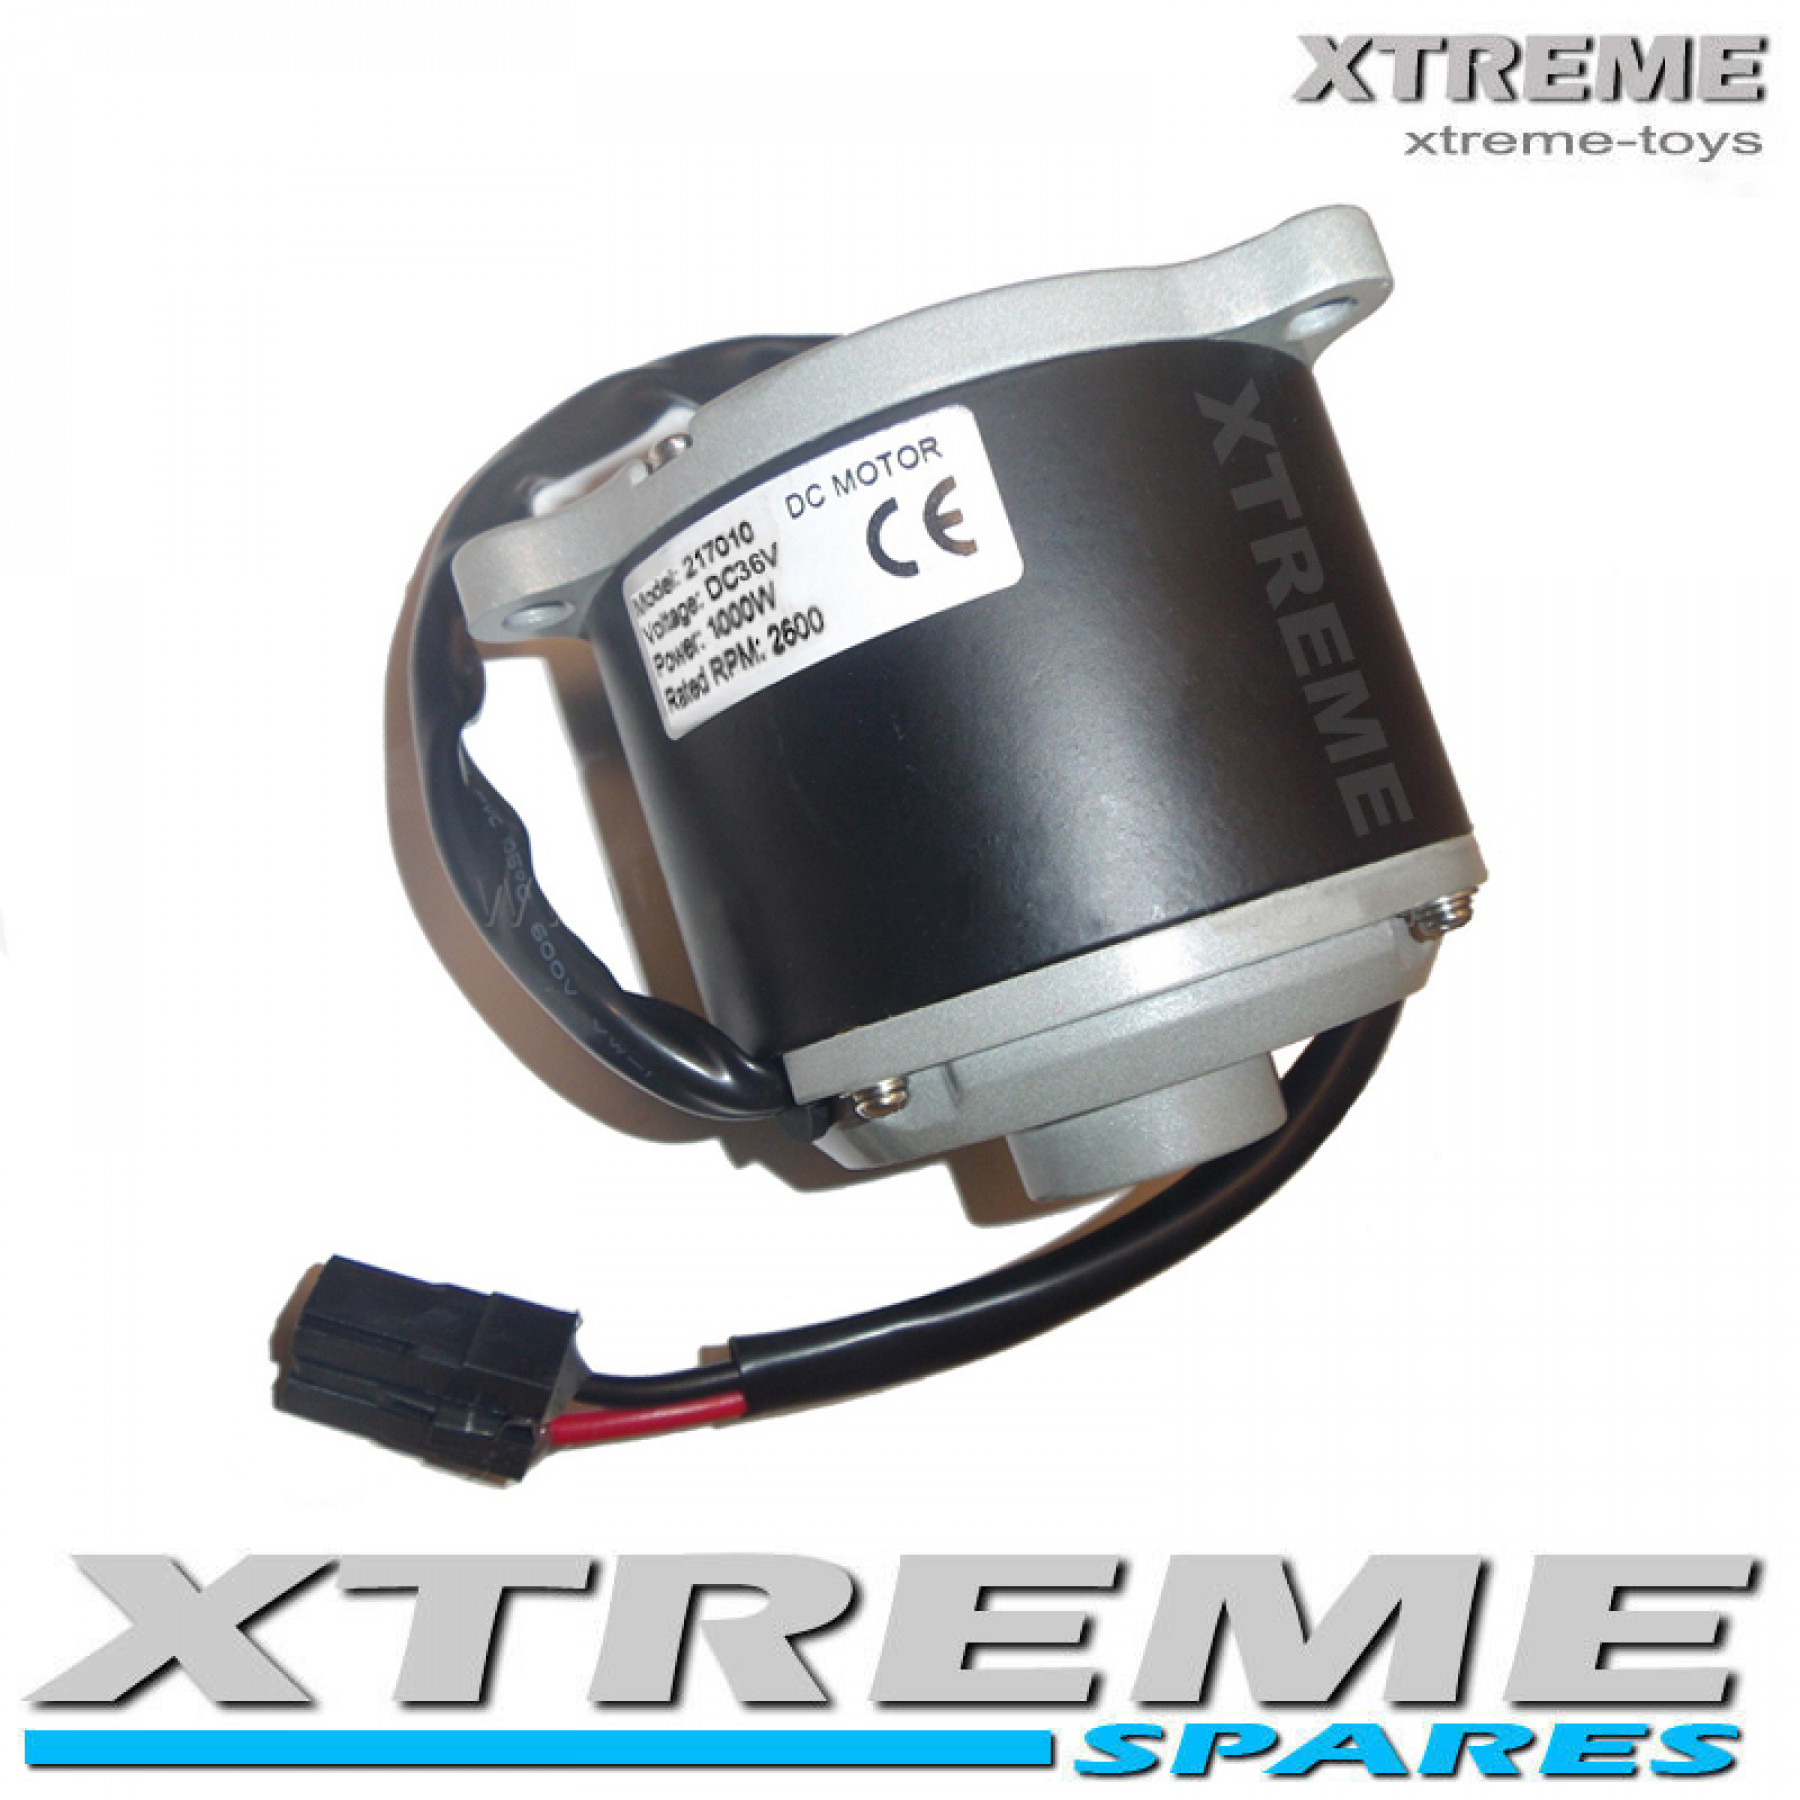 XTREME ELECTRIC XTM MX-PRO 36V 1000W REPLACEMENT MOTOR